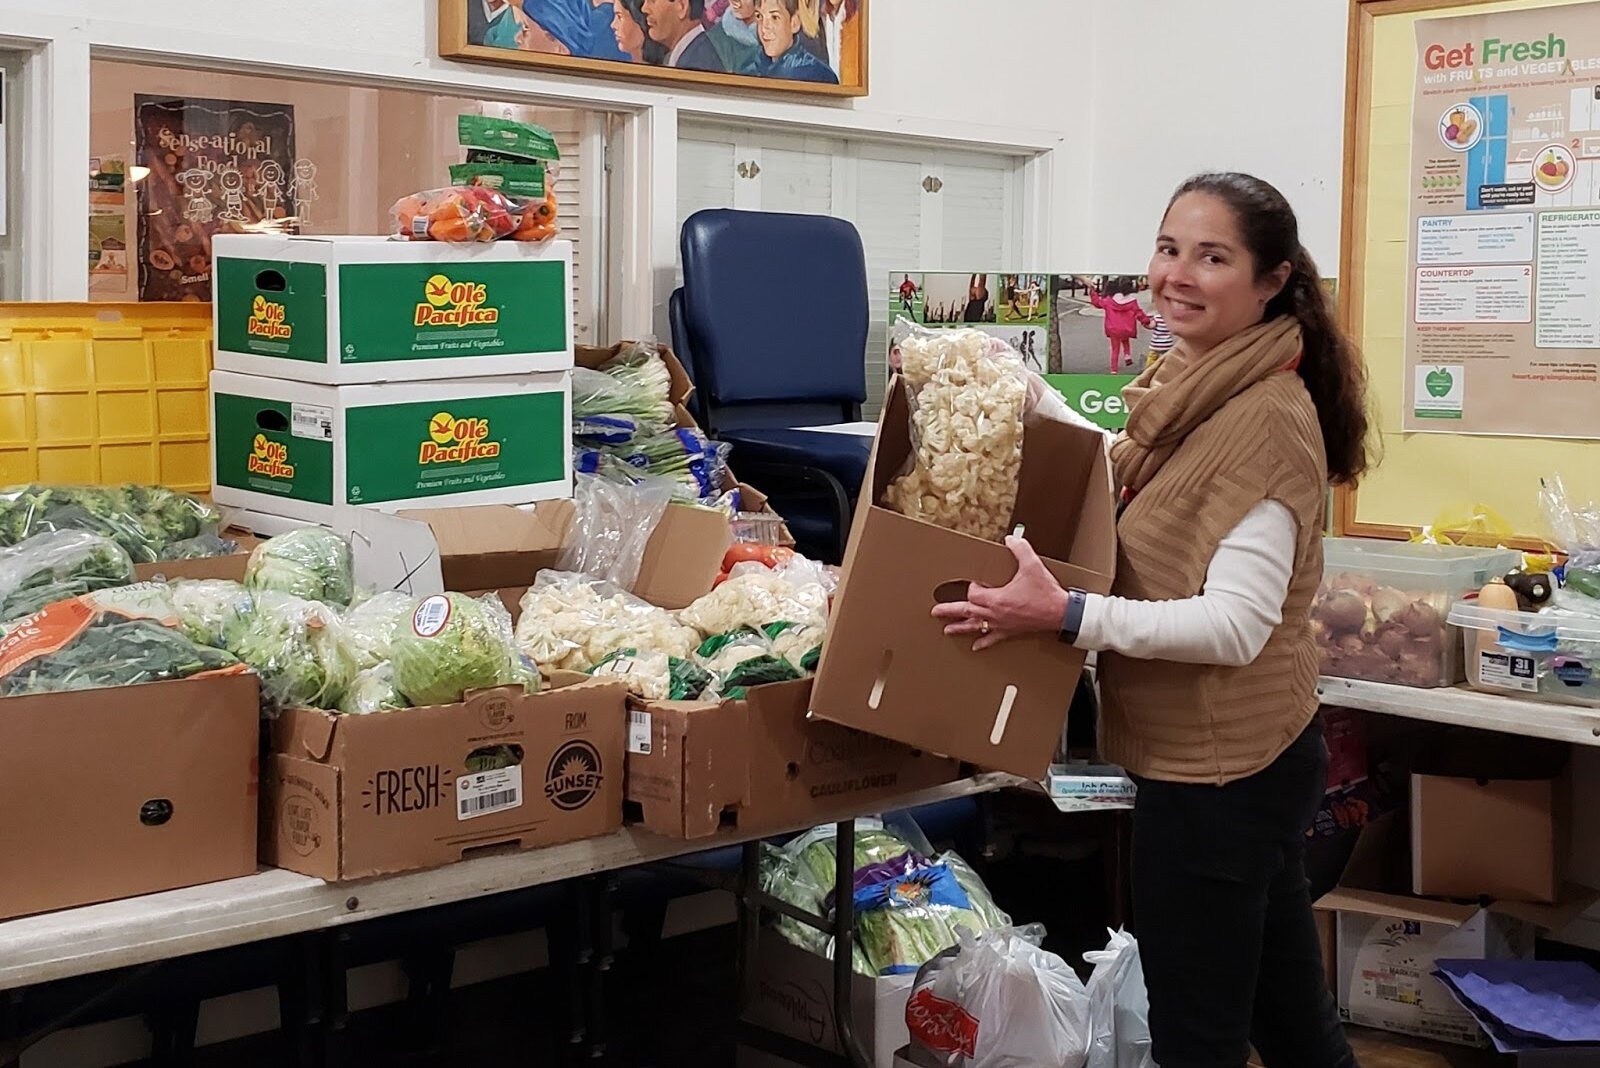 SR2H member Lisa Lewis is based out of Wyoming, Michigan, with United Church Outreach Ministry (UCOM), where she's been leading virtual Health Through Literacy programming and assists with distributing fresh produce in the community.